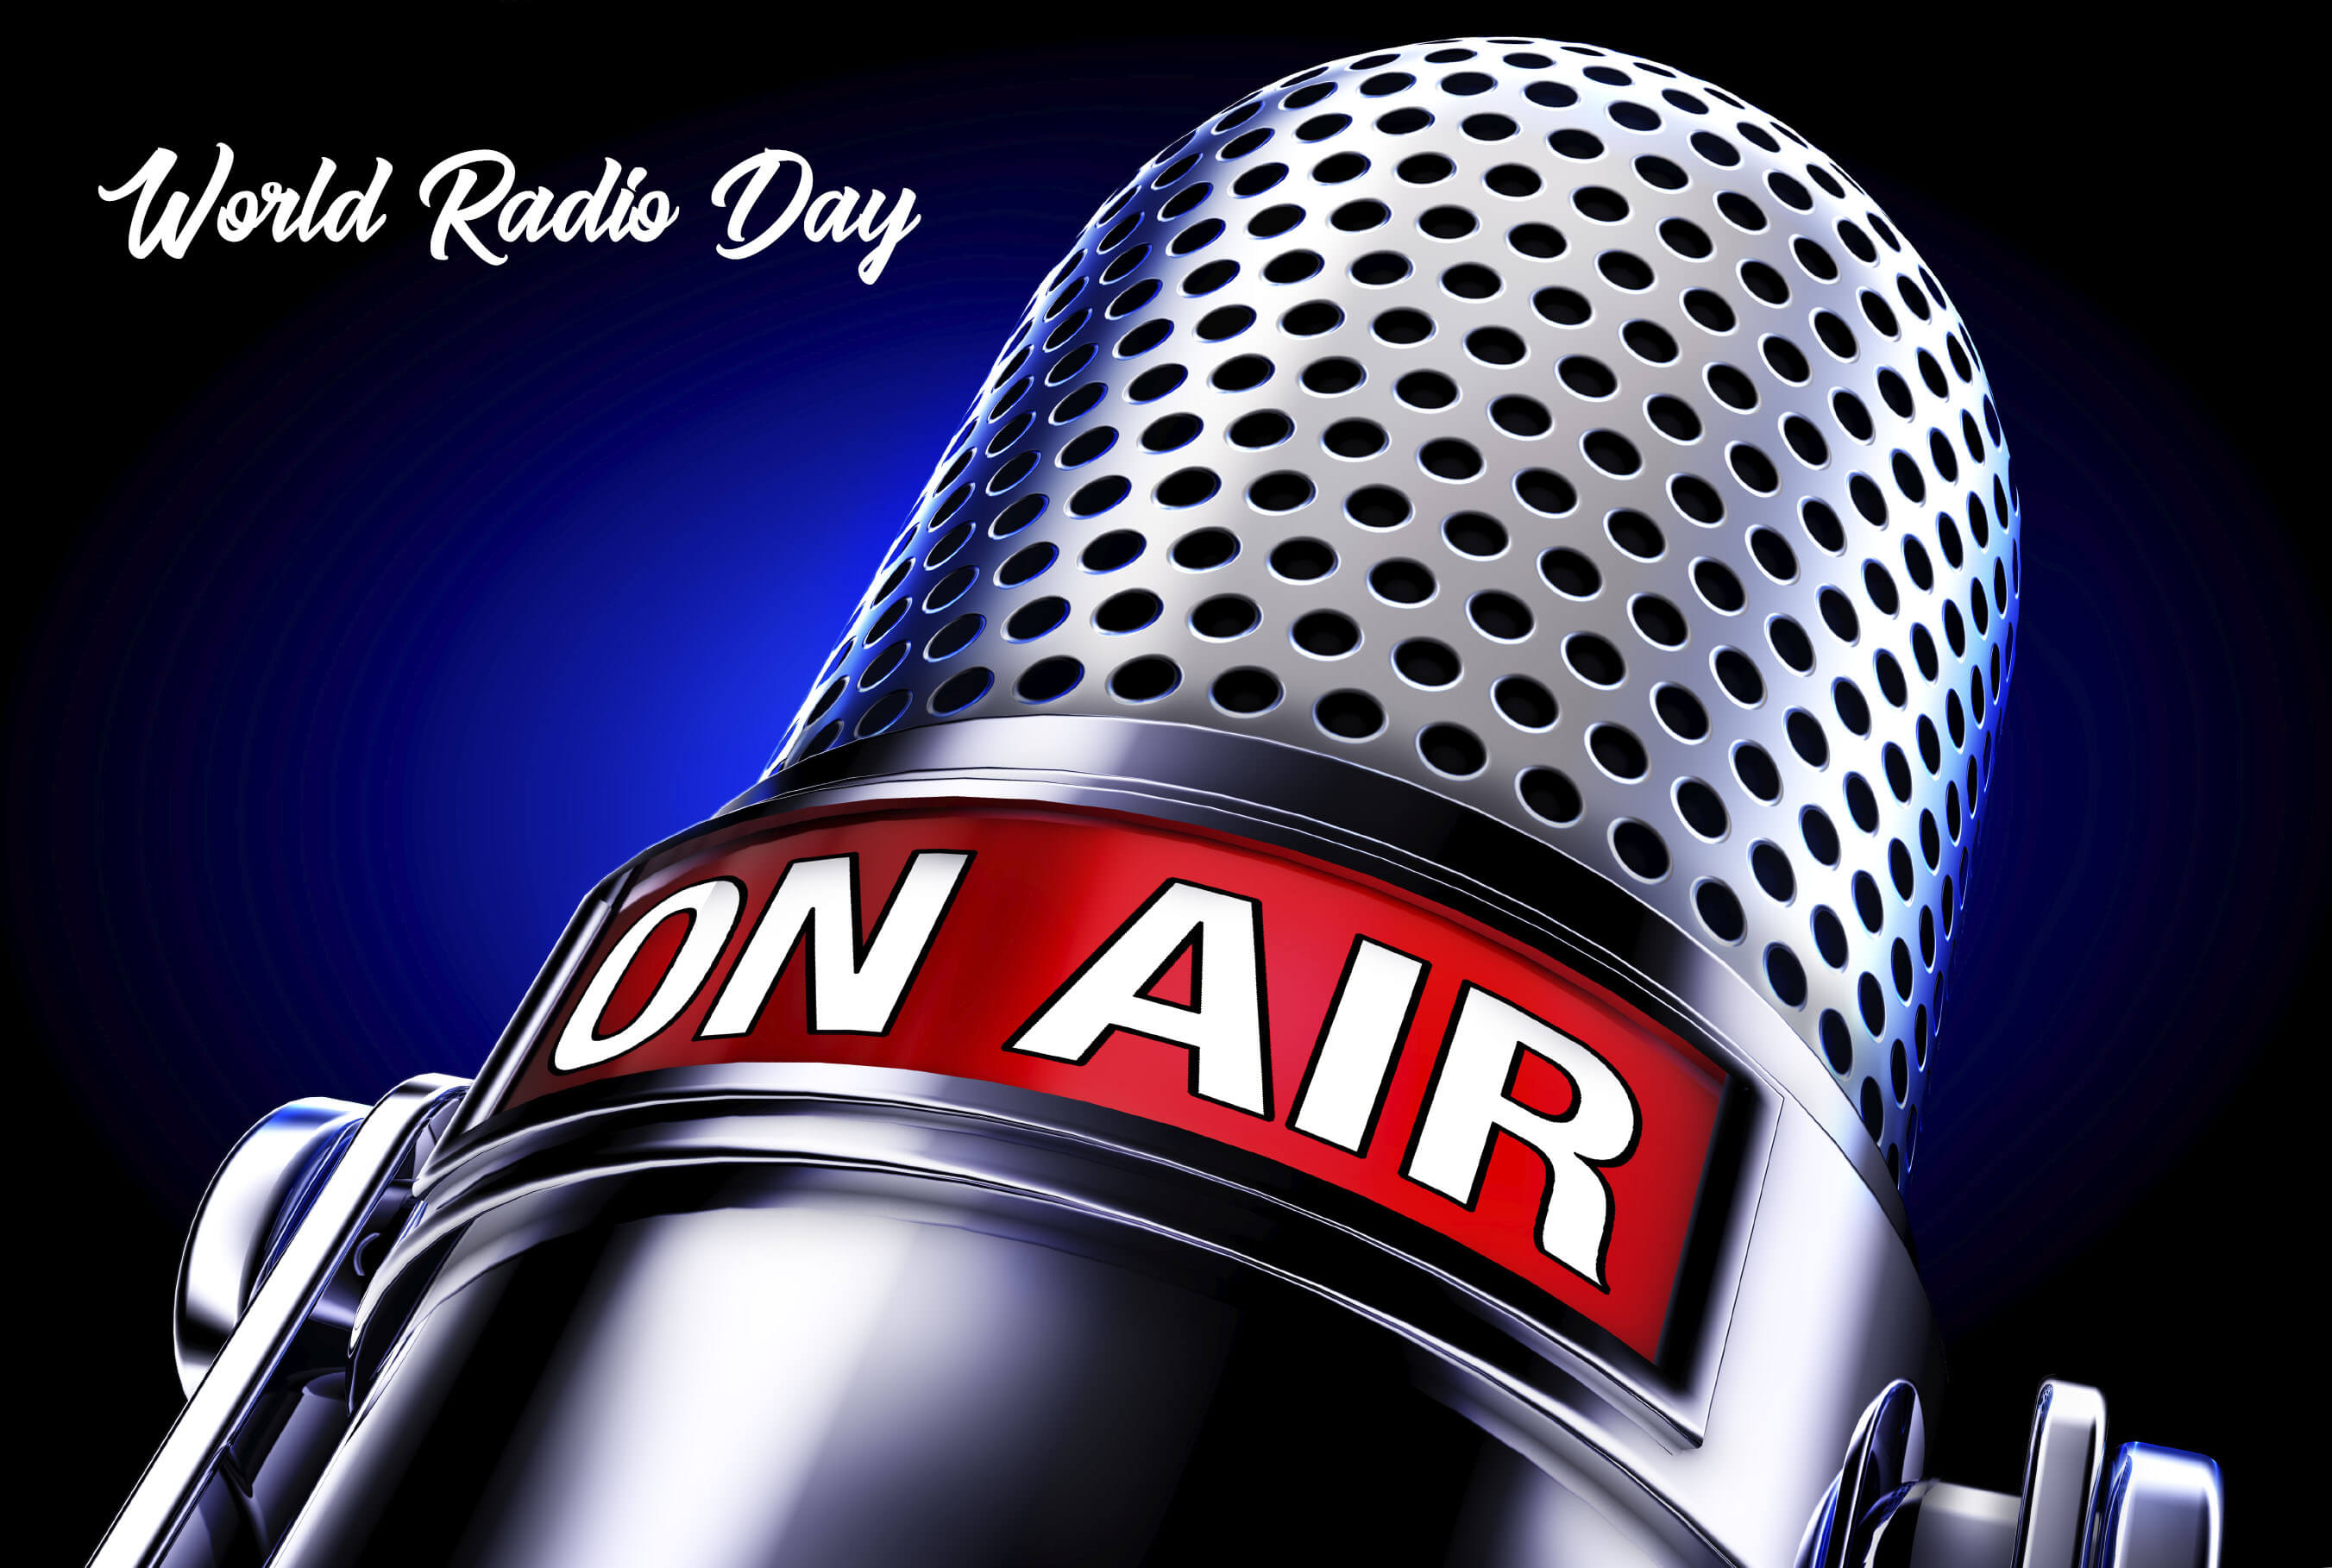 world radio day mic desktop background large hd wallpaper